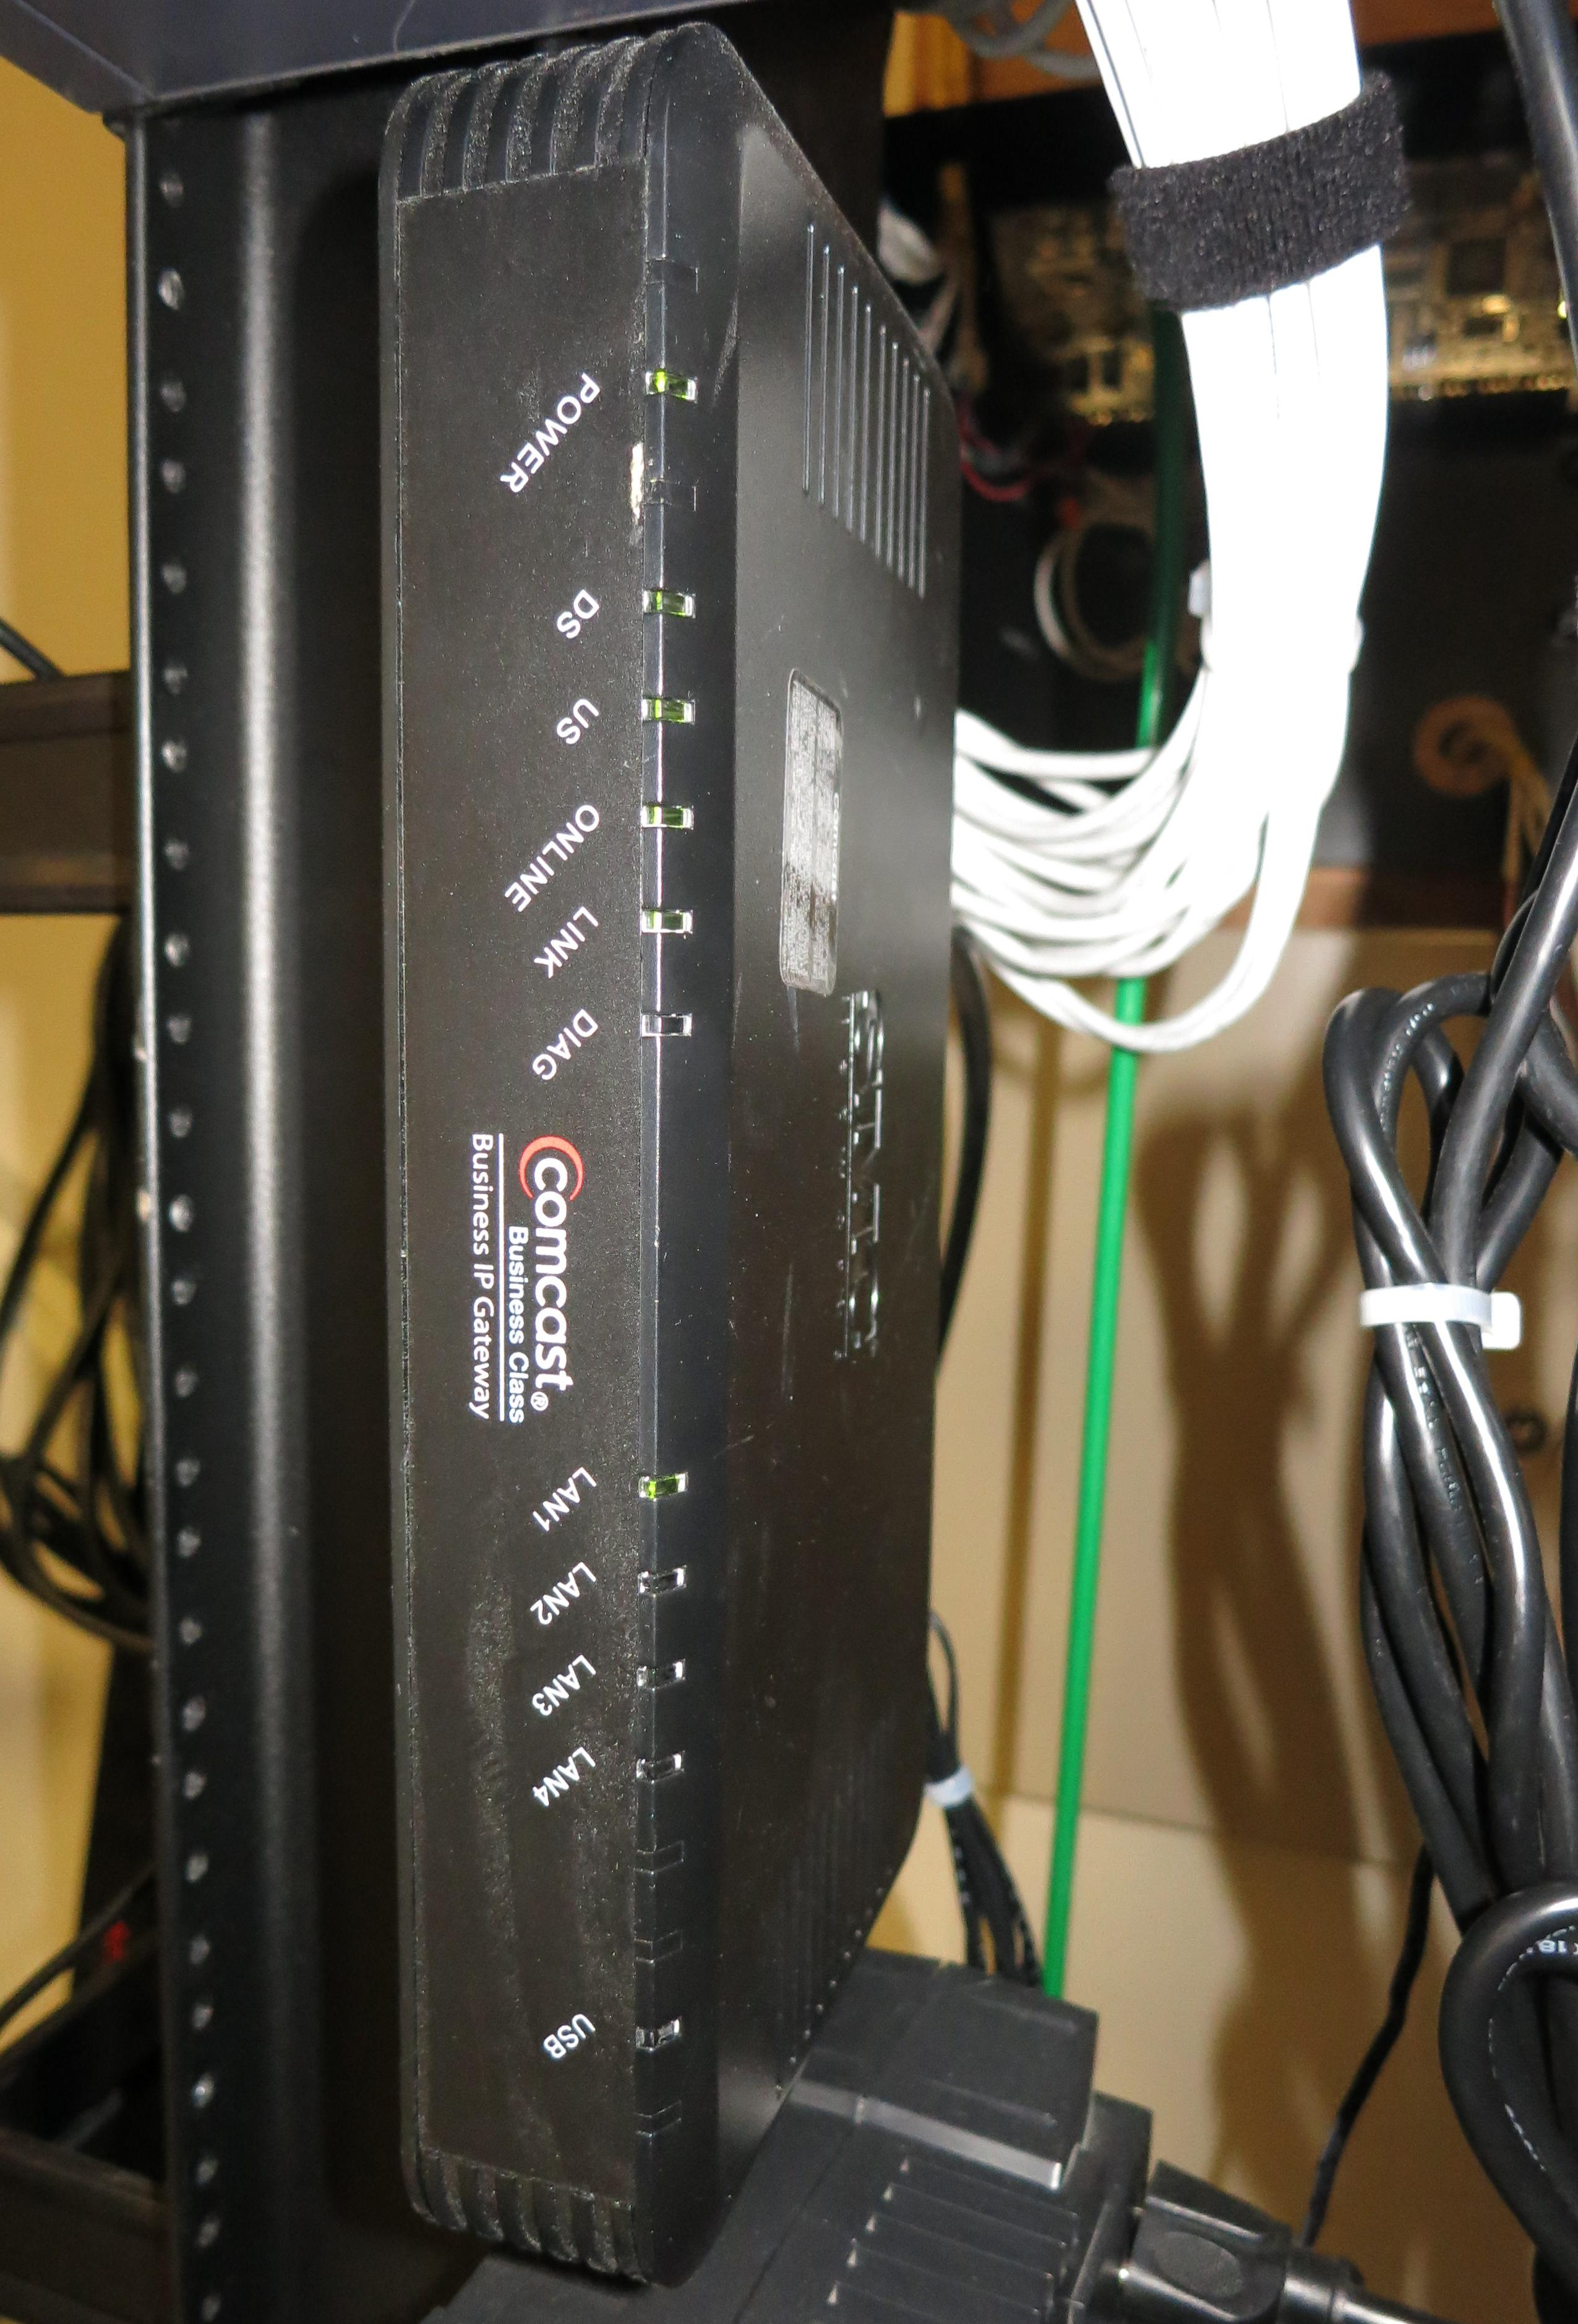 A router with WiFi and LAN capabilities